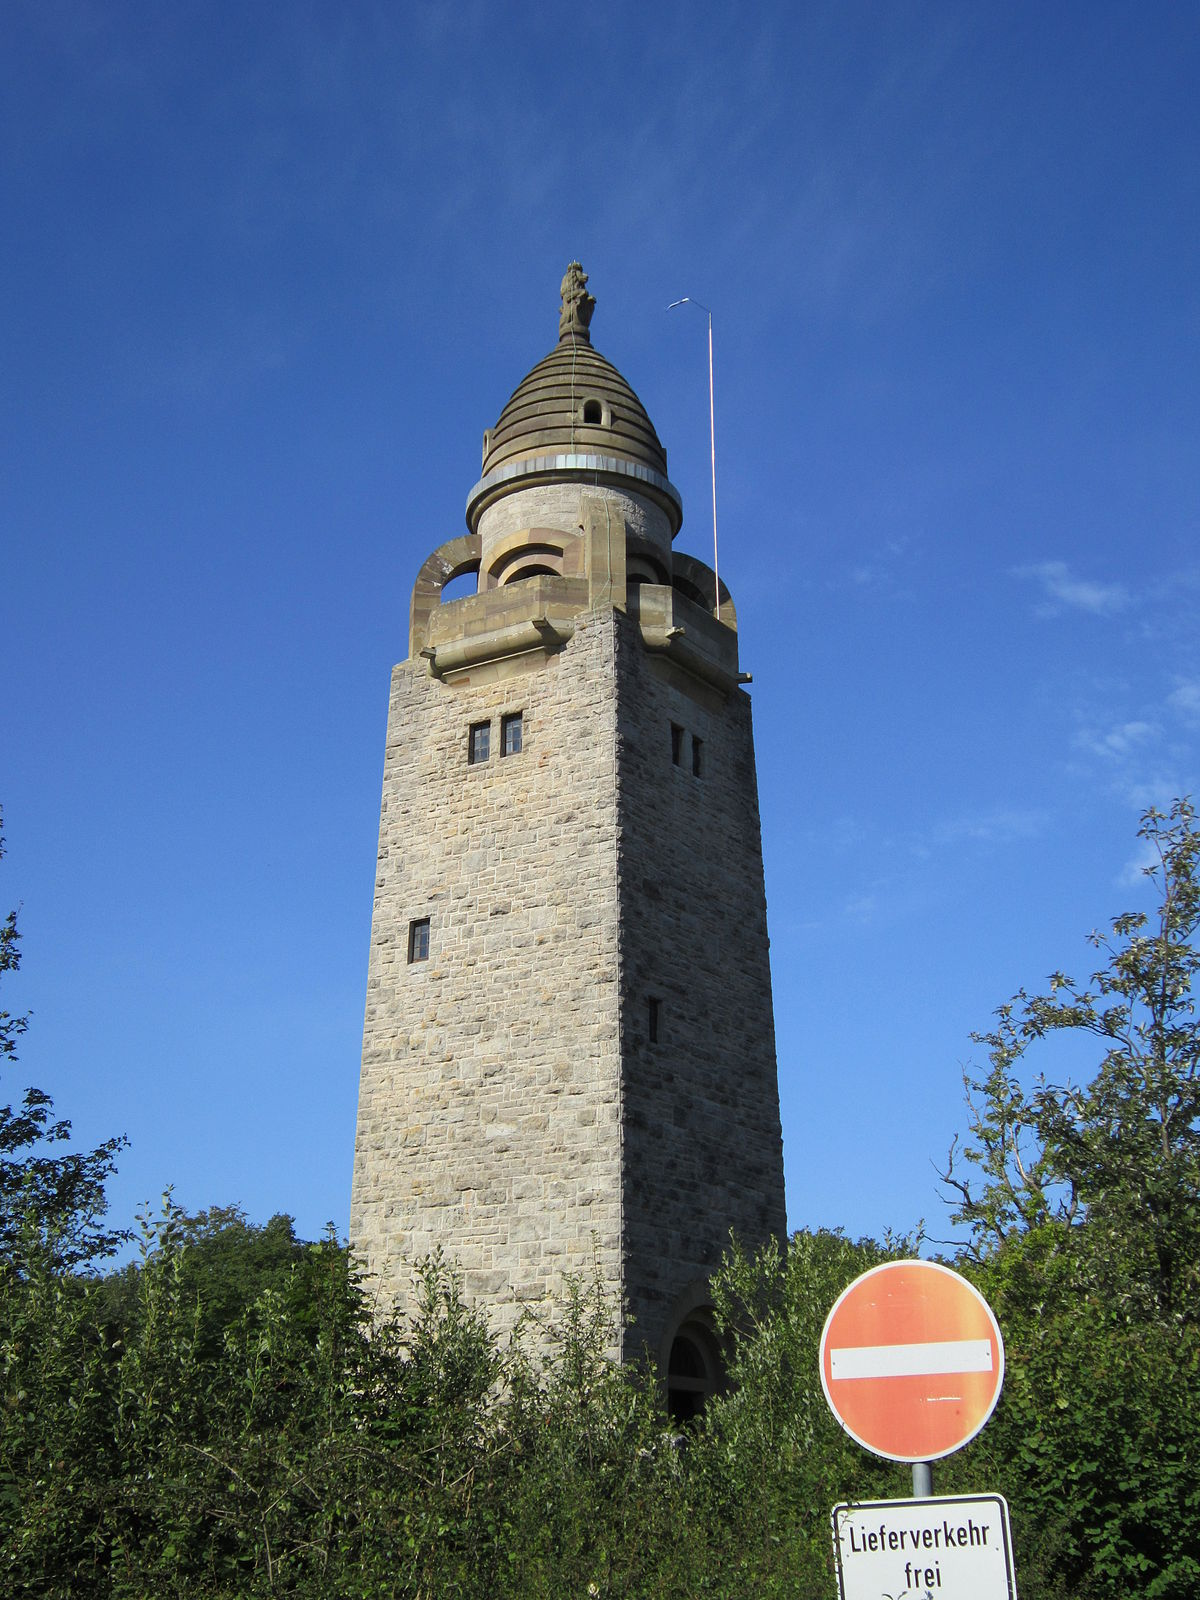 Bad Kosten Wittelsbacher Turm (bad Kissingen) – Wikipedia